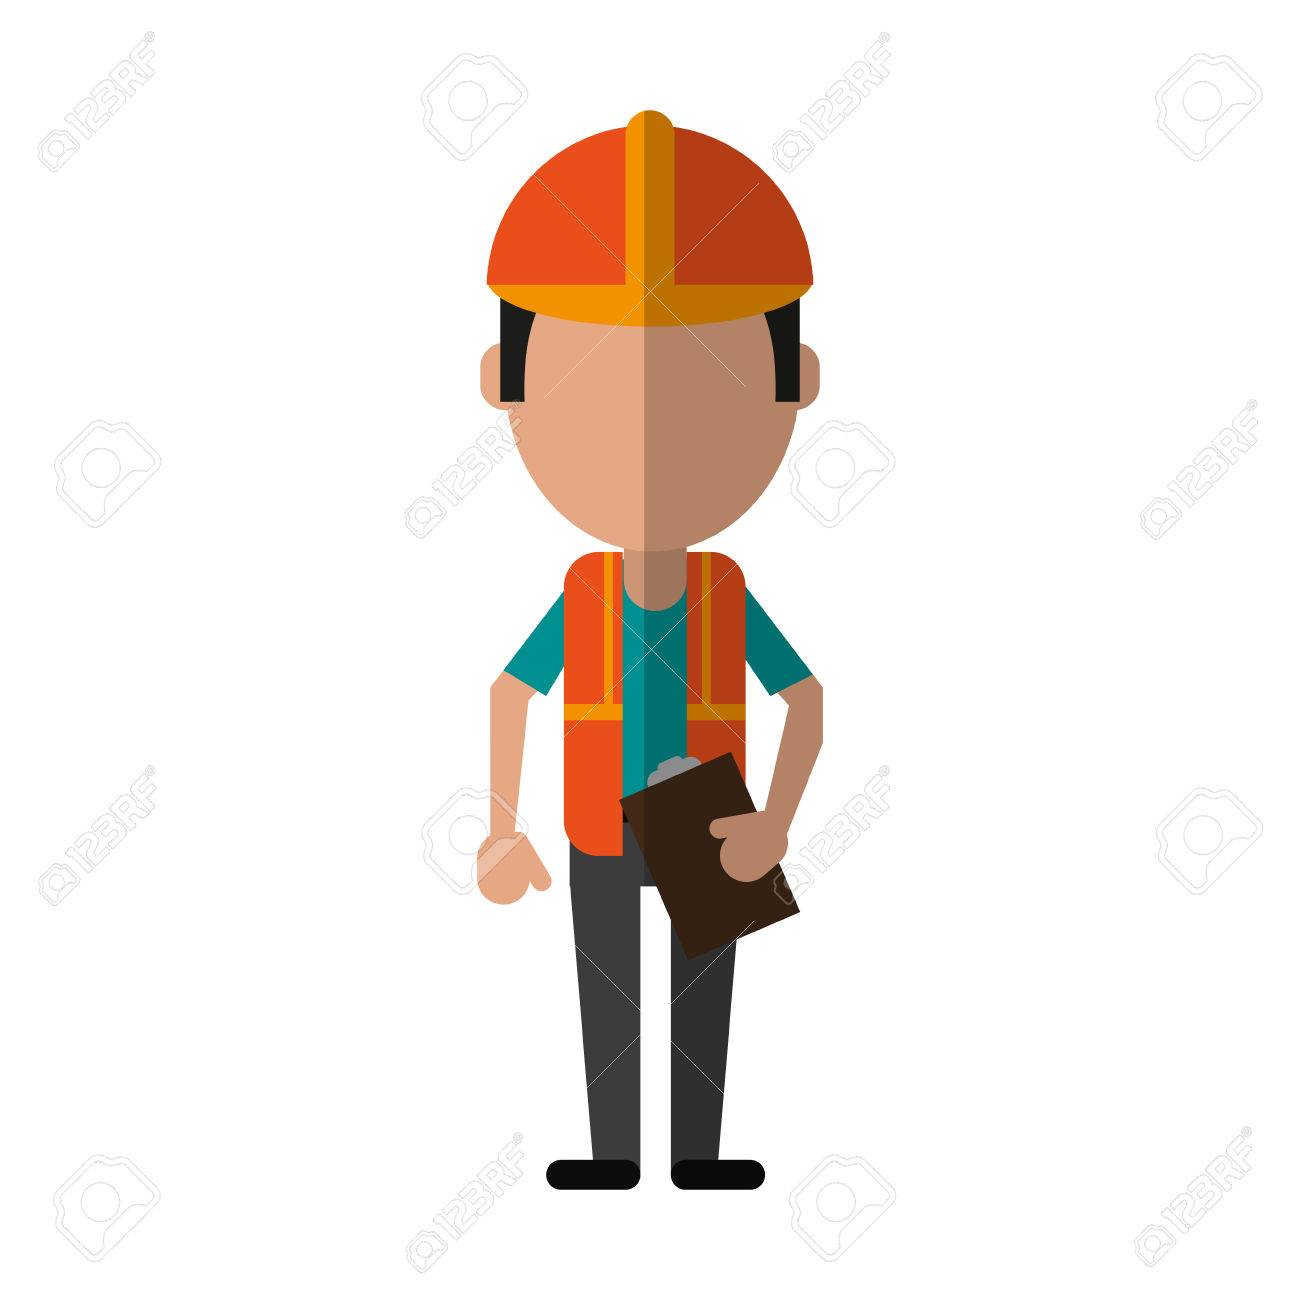 Male Engineer Construction Or Factory Worker Avatar Wearing Reflective Vest Icon Image Vector Illustration Design Stock